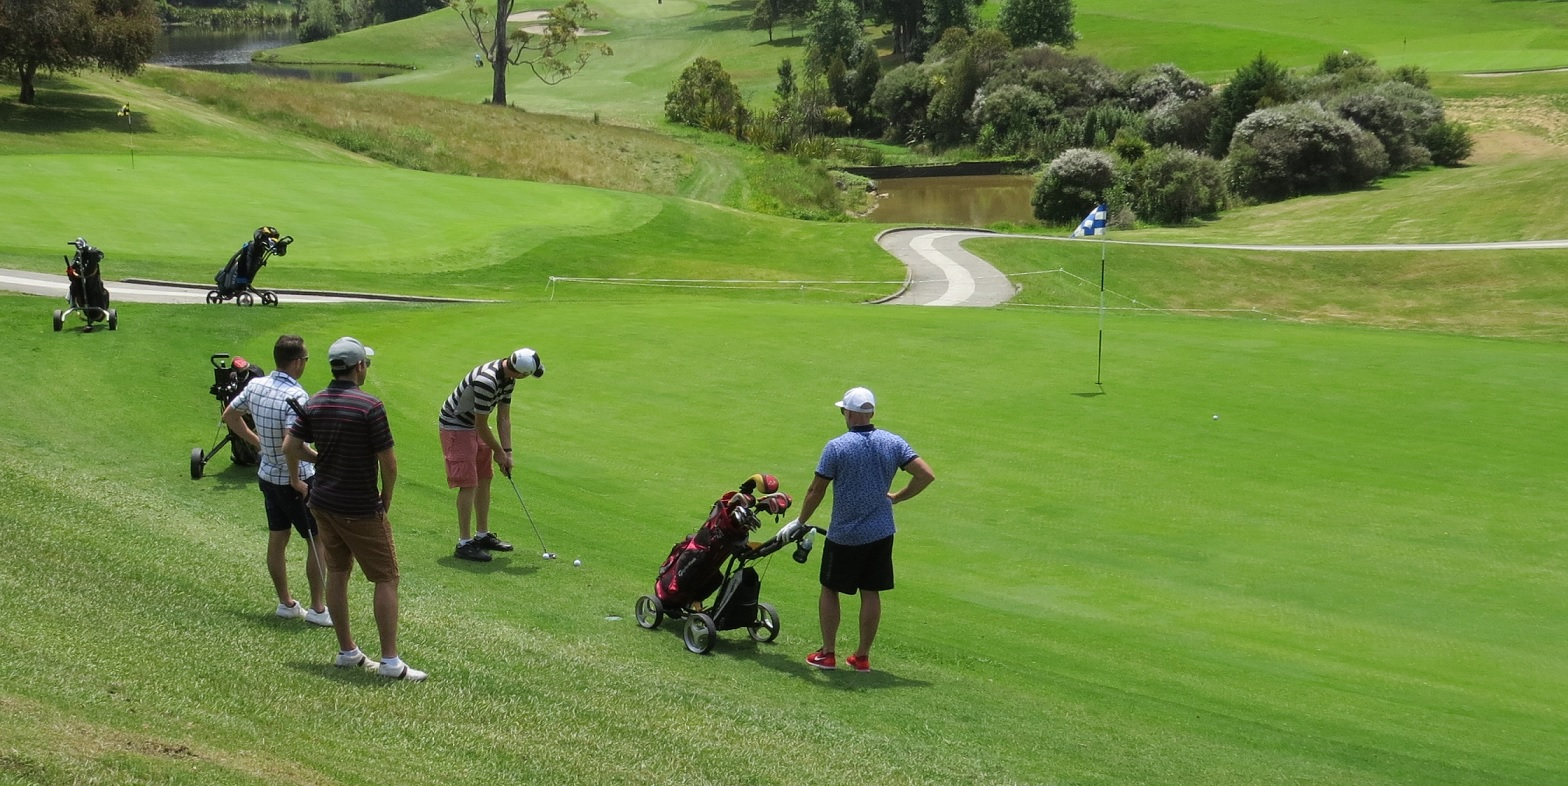 Quadrent charity golf day - Save the date 22nd Nov 19